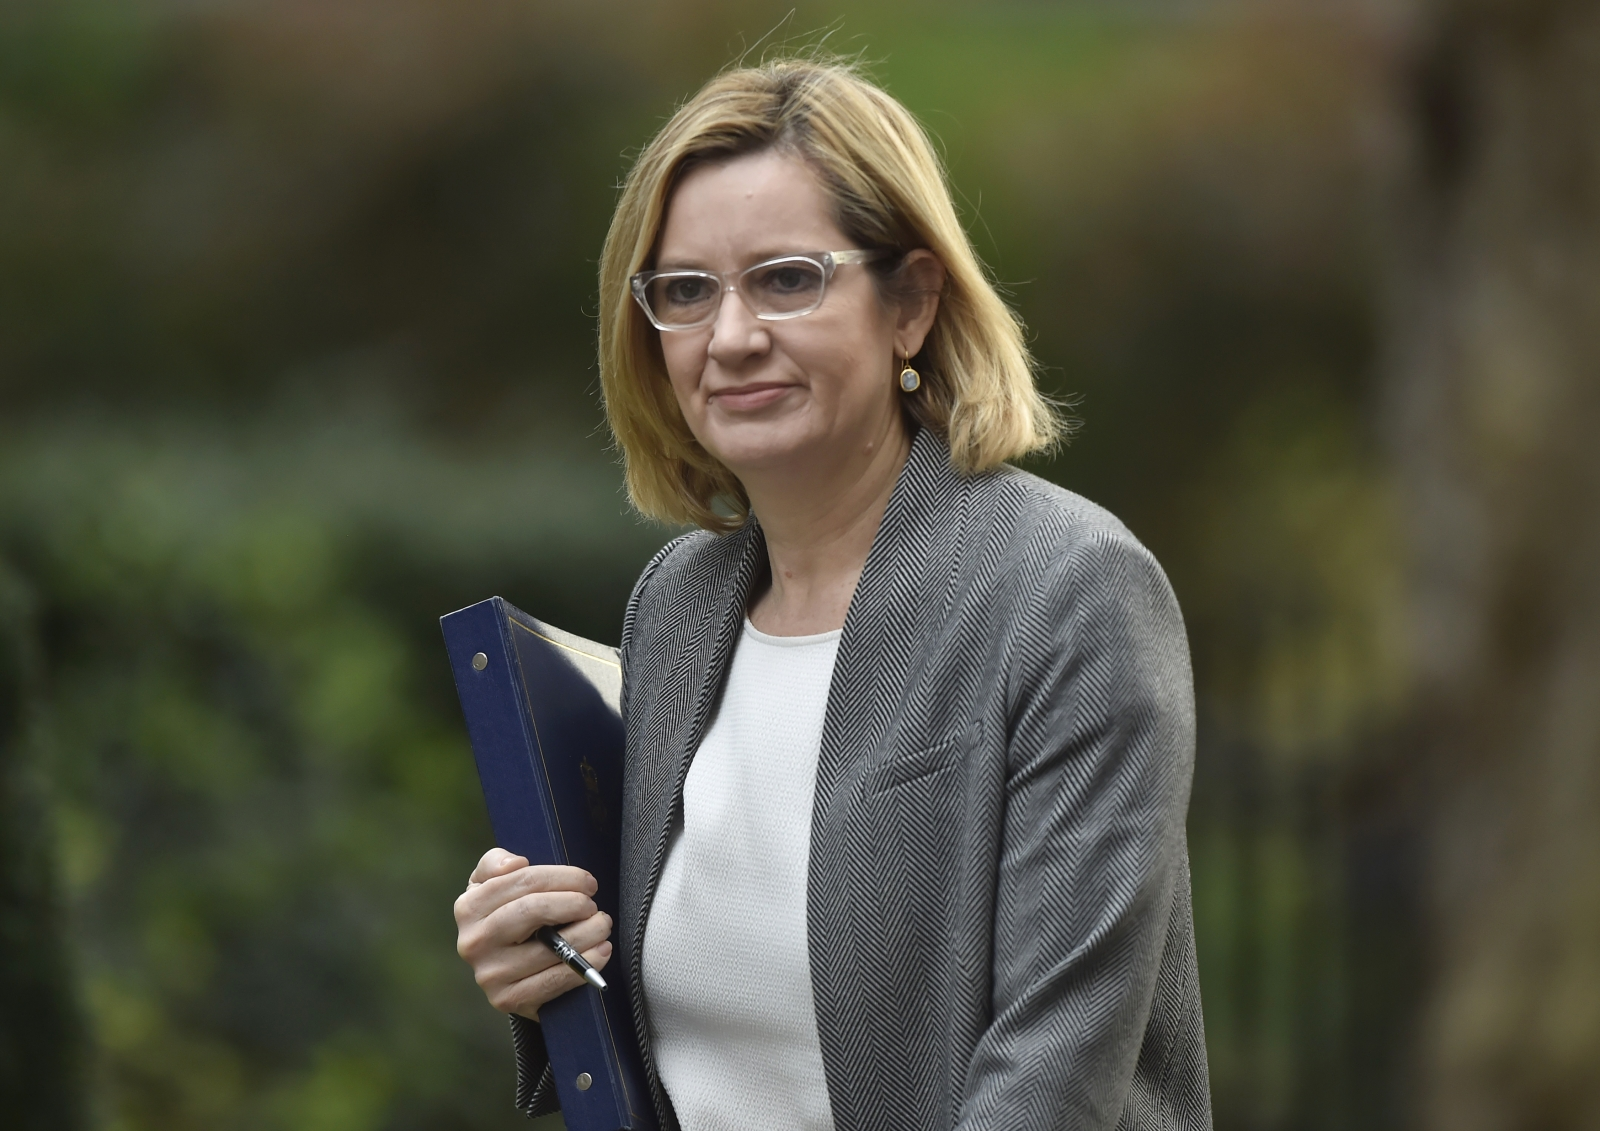 u-k-home-secretary-on-england-concert-explosion-this-was-a-barbaric-attack